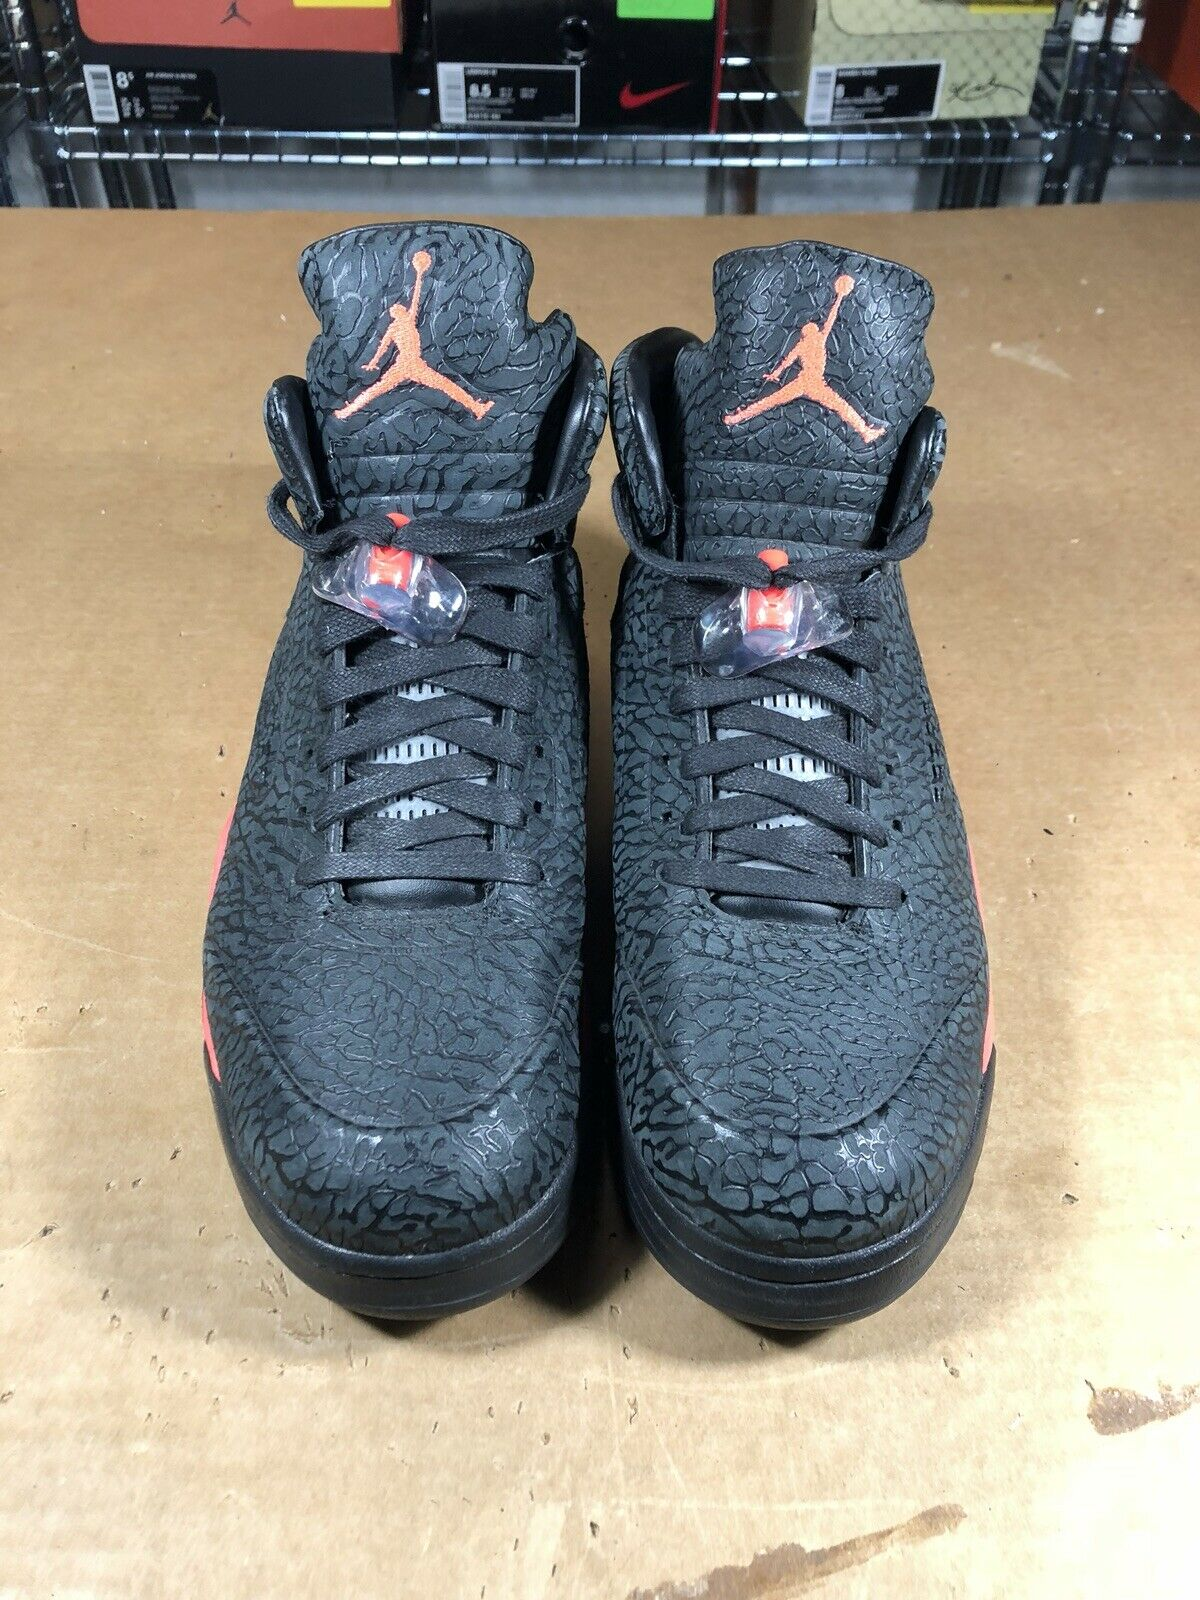 100% Authentic Air Jordan 5 3lab5 Infrared Size 12 599581 010